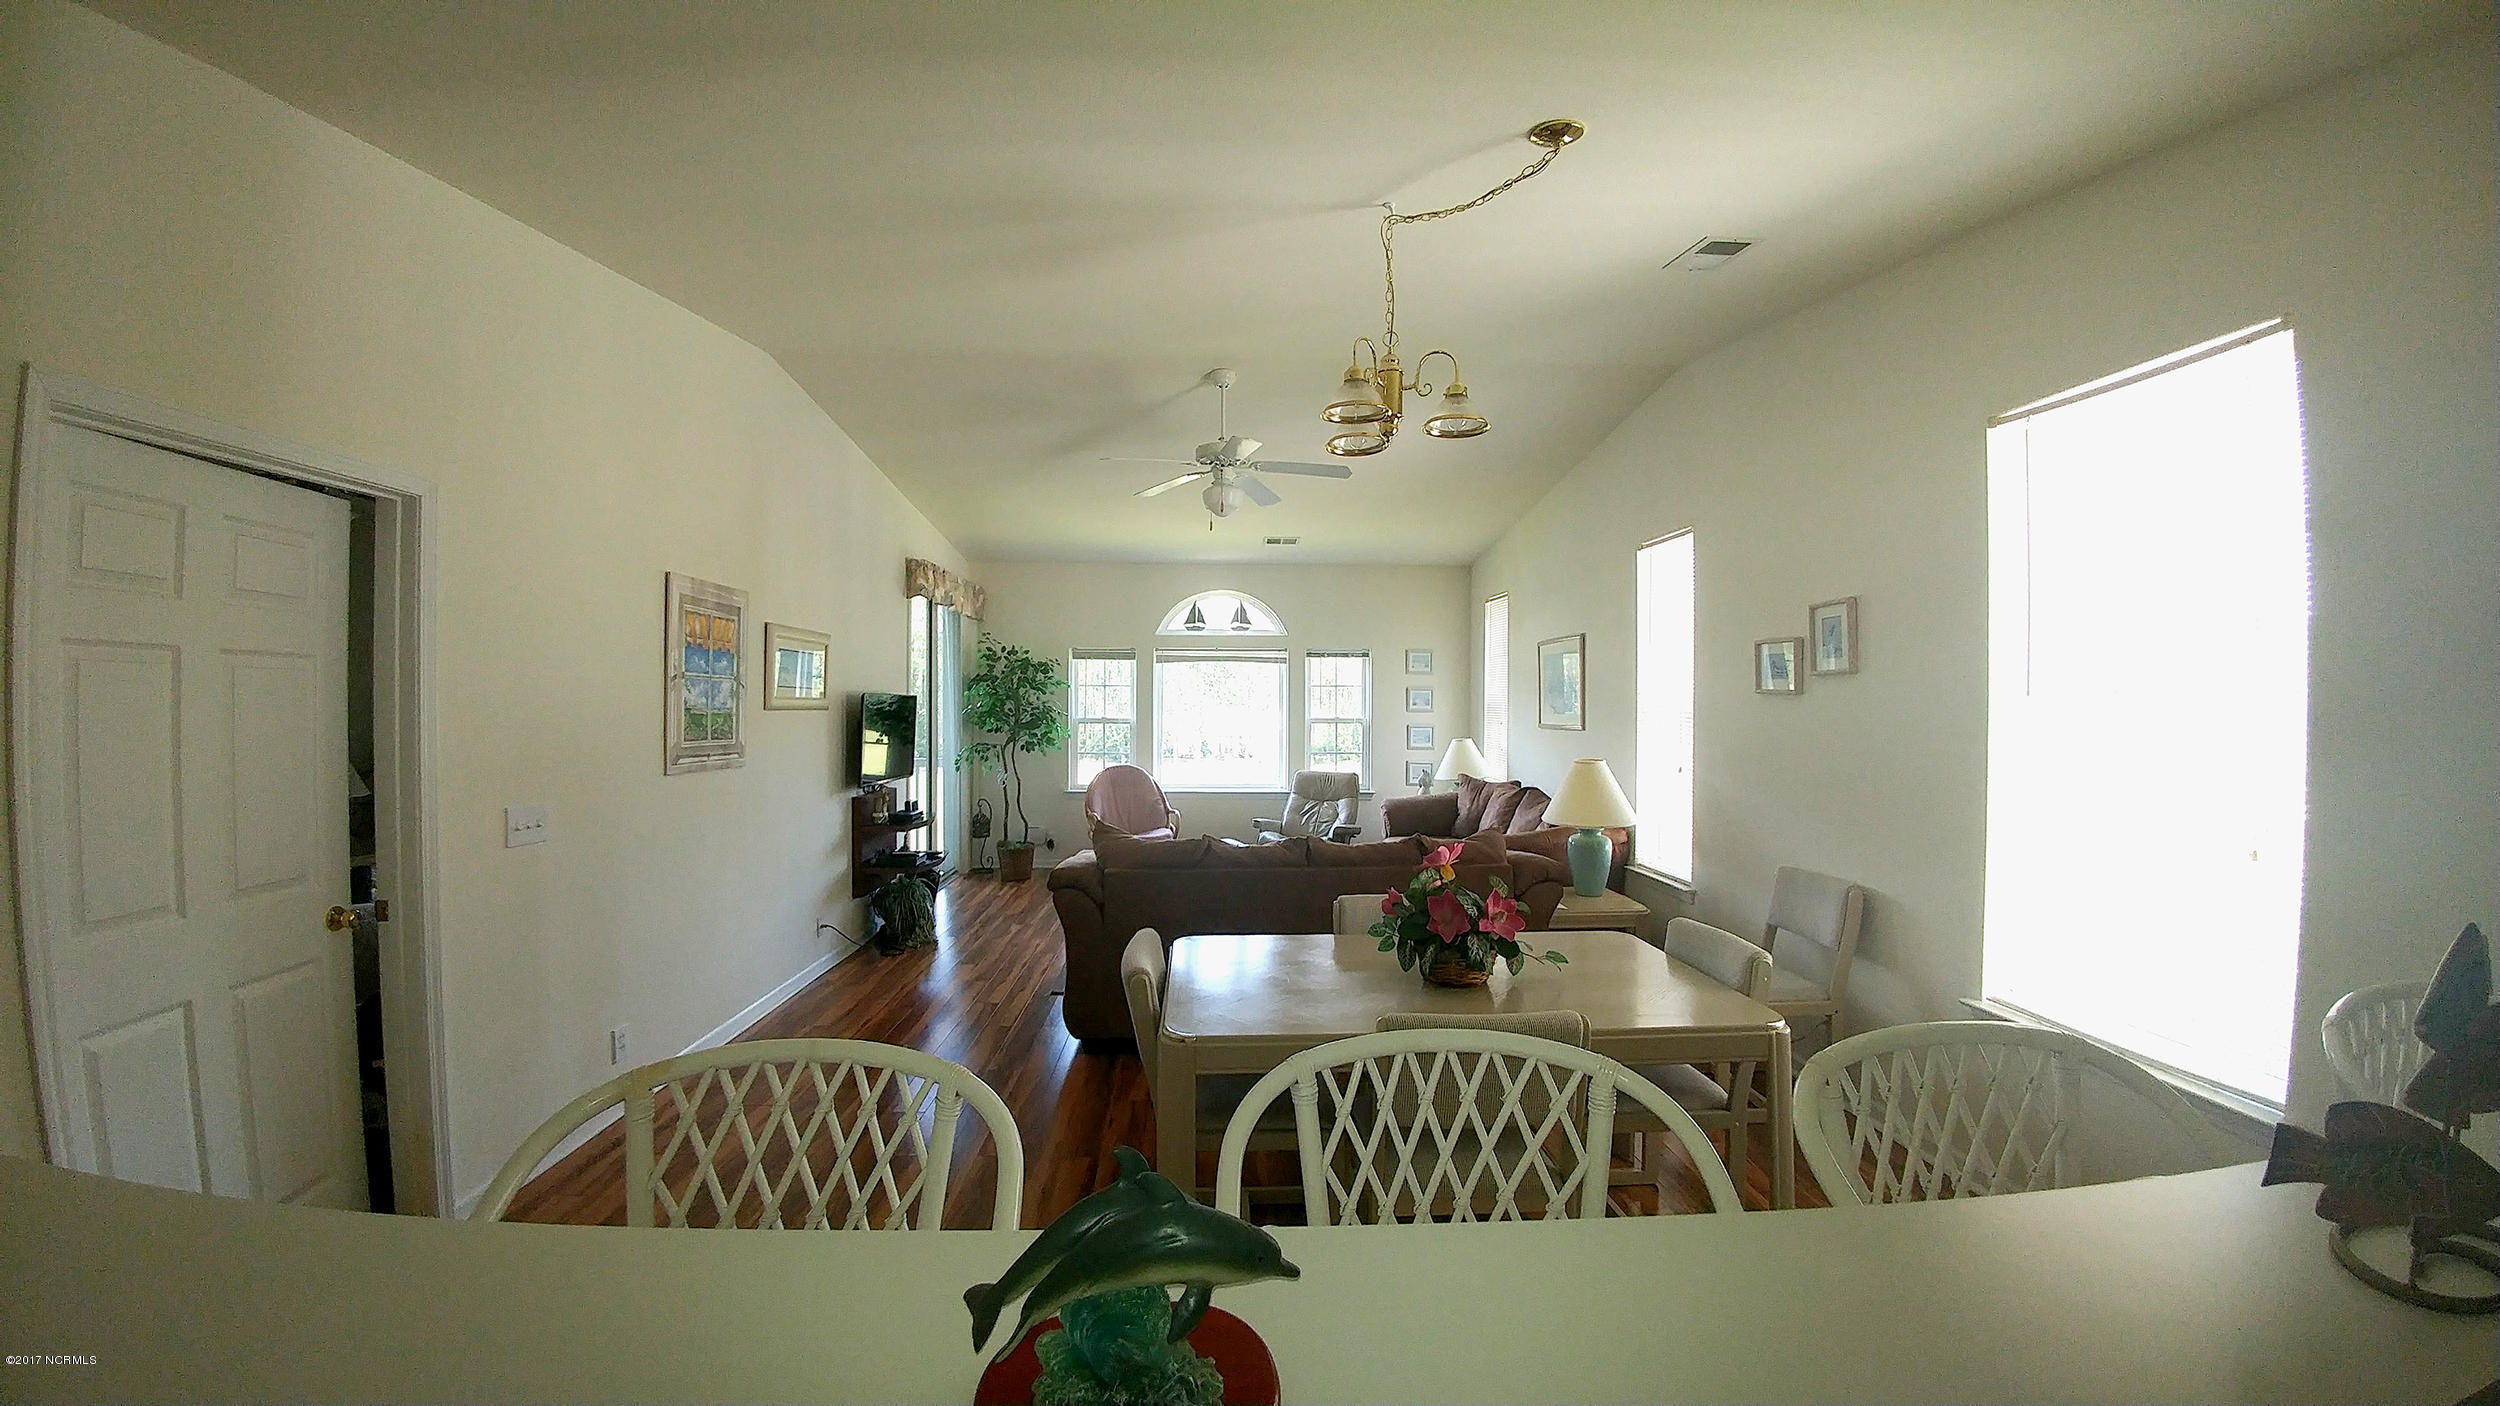 872 Great Egret Circle, Sunset Beach, North Carolina, 3 Bedrooms Bedrooms, 5 Rooms Rooms,2 BathroomsBathrooms,Condominium,For sale,Great Egret,100069337